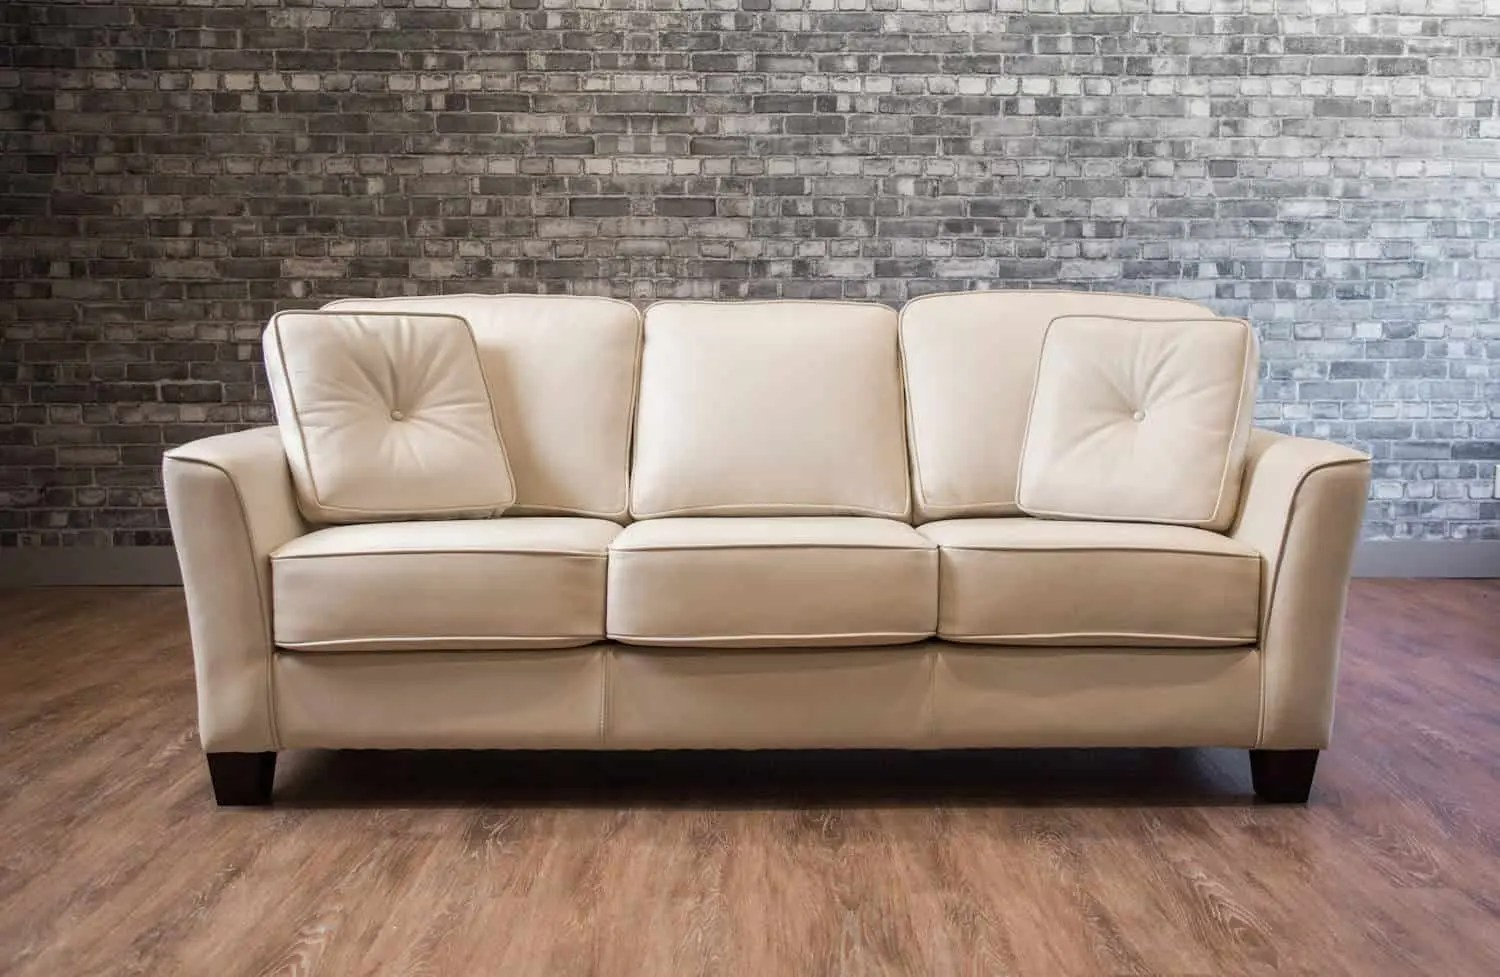 Leather Couch Canada Sofa Canada Modern Sectional Sofas And Corner Couches In